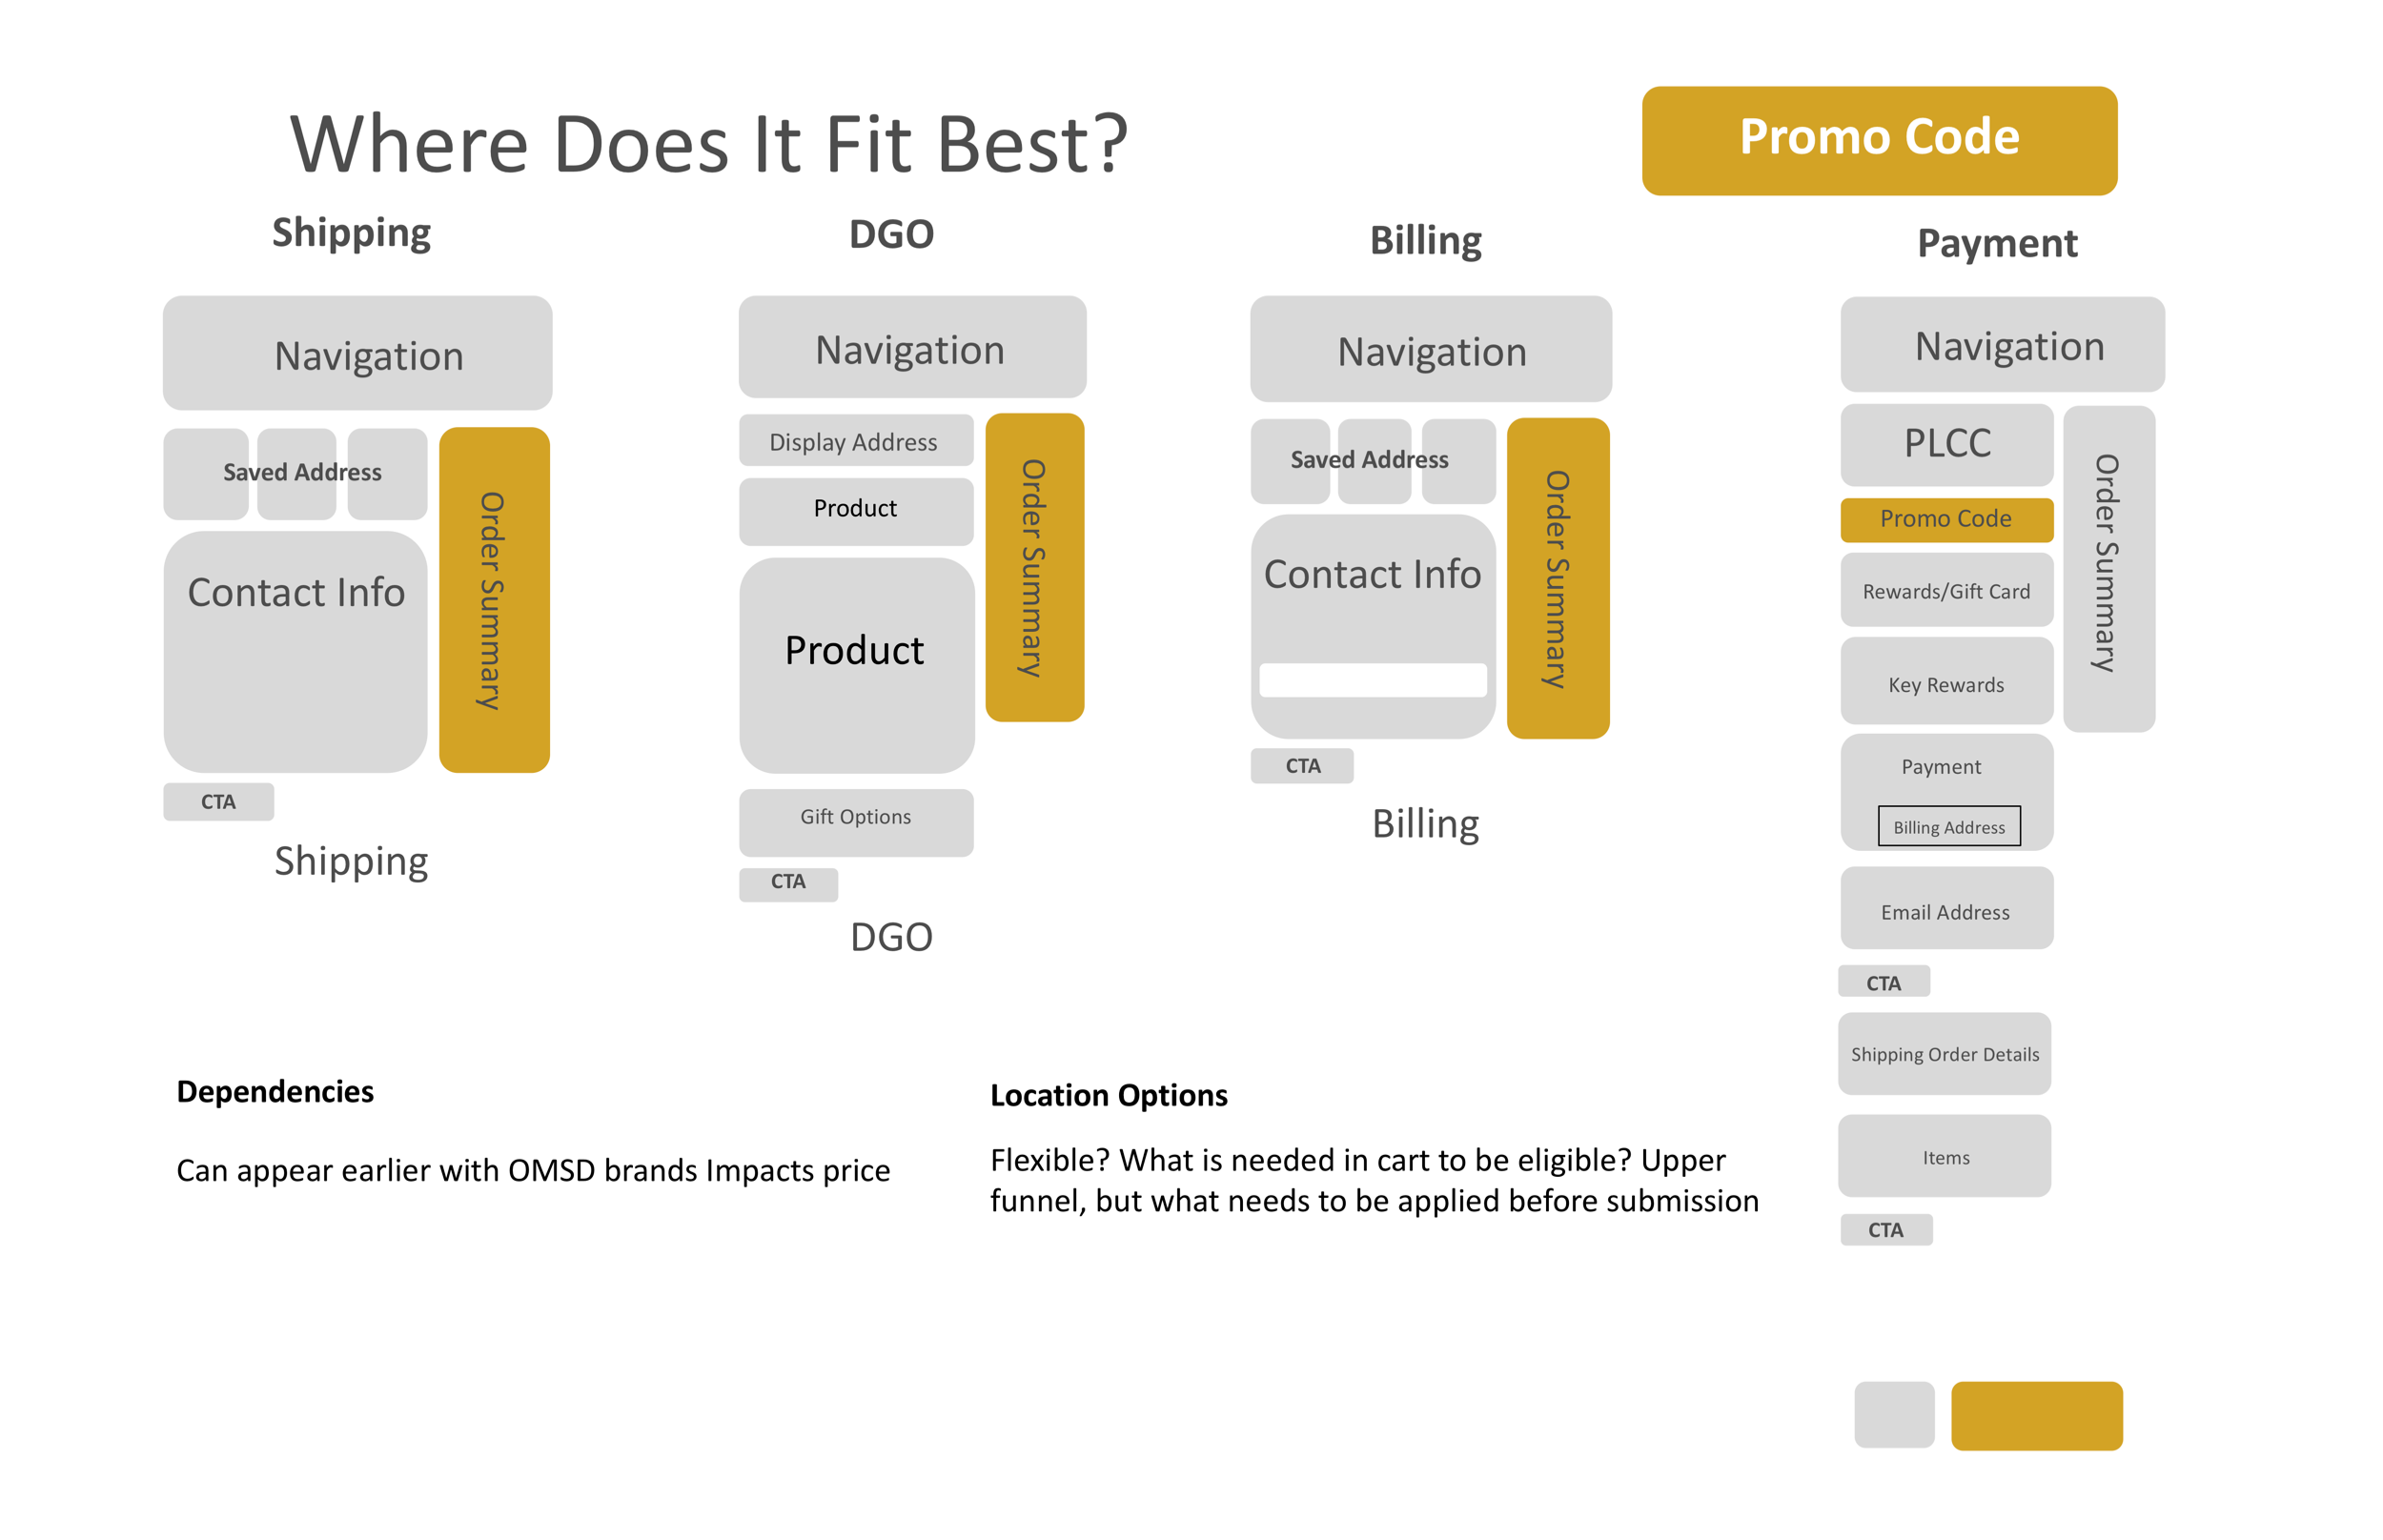 Where does it fit best? - Promo Code